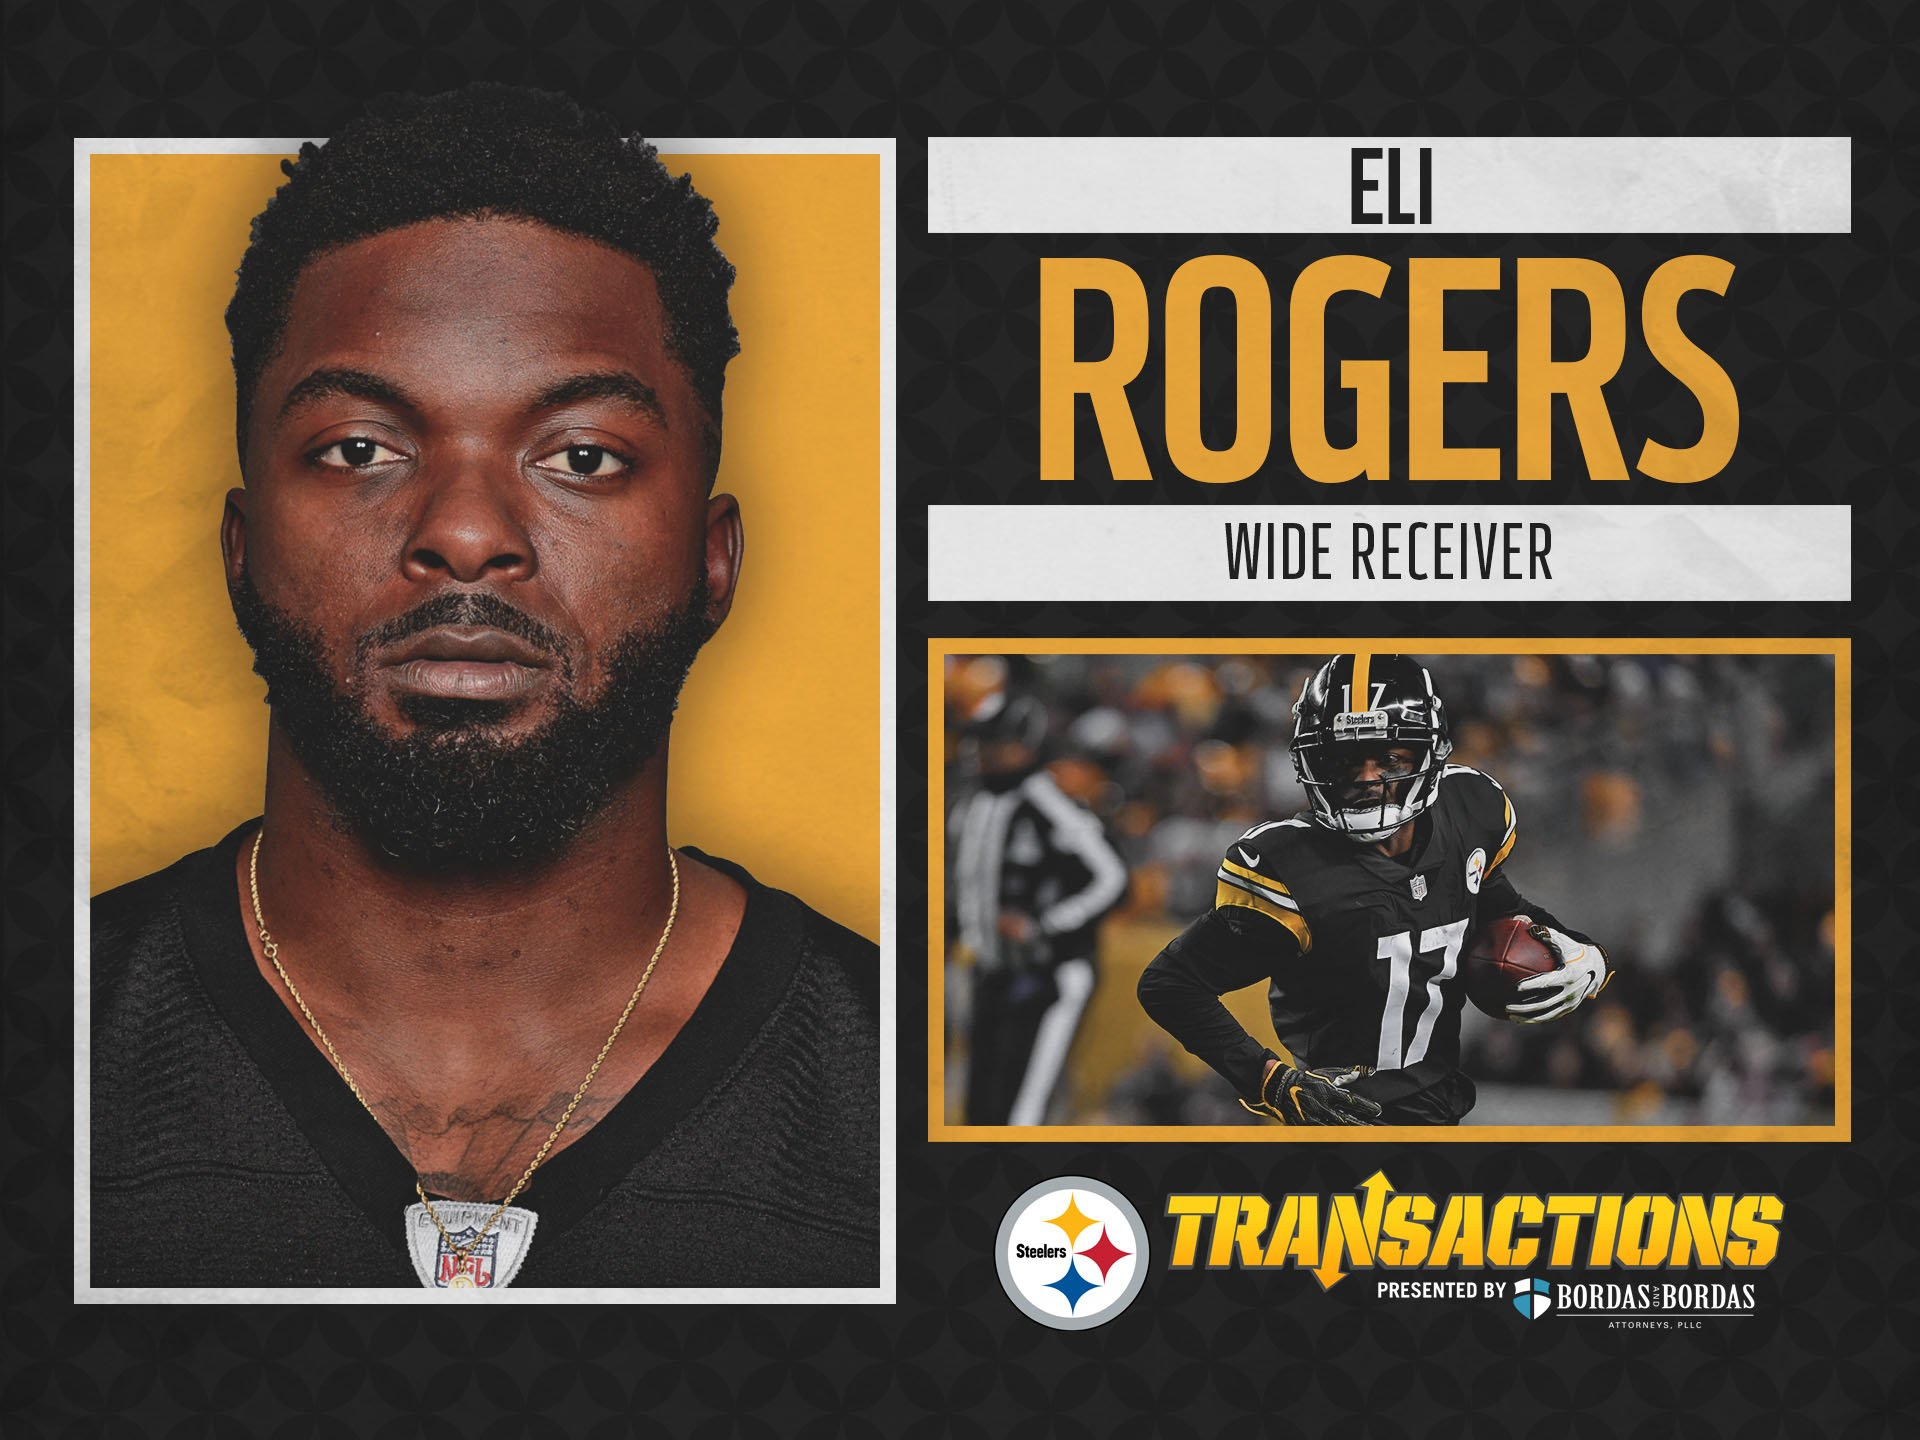 We have signed WR Eli Rogers to a new two-year deal.   @BordasLaw TRANSACTION: https://t.co/ew4G8Mh7UB https://t.co/kFQhNQ2QWv